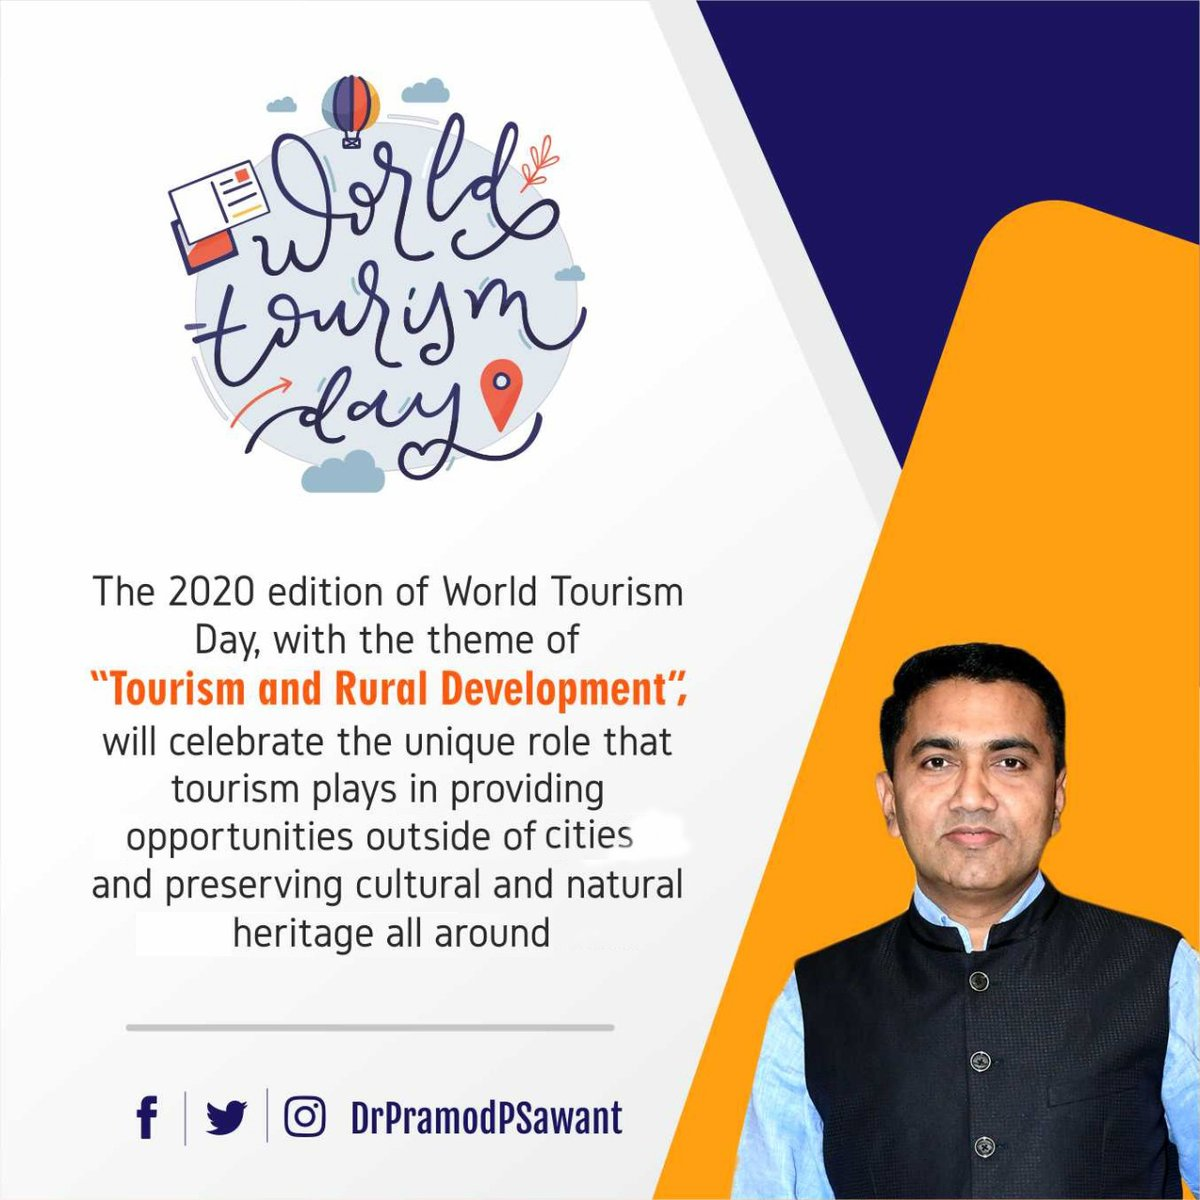 "The 2020 edition of World Tourism Day, with the theme of ""Tourism and Rural Development"", will celebrate the unique role that tourism plays in providing opportunities outside of cities and preserving cultural and natural heritage all around.   Greetings on #WorldTourismDay. https://t.co/VXc0nWq0Nu"